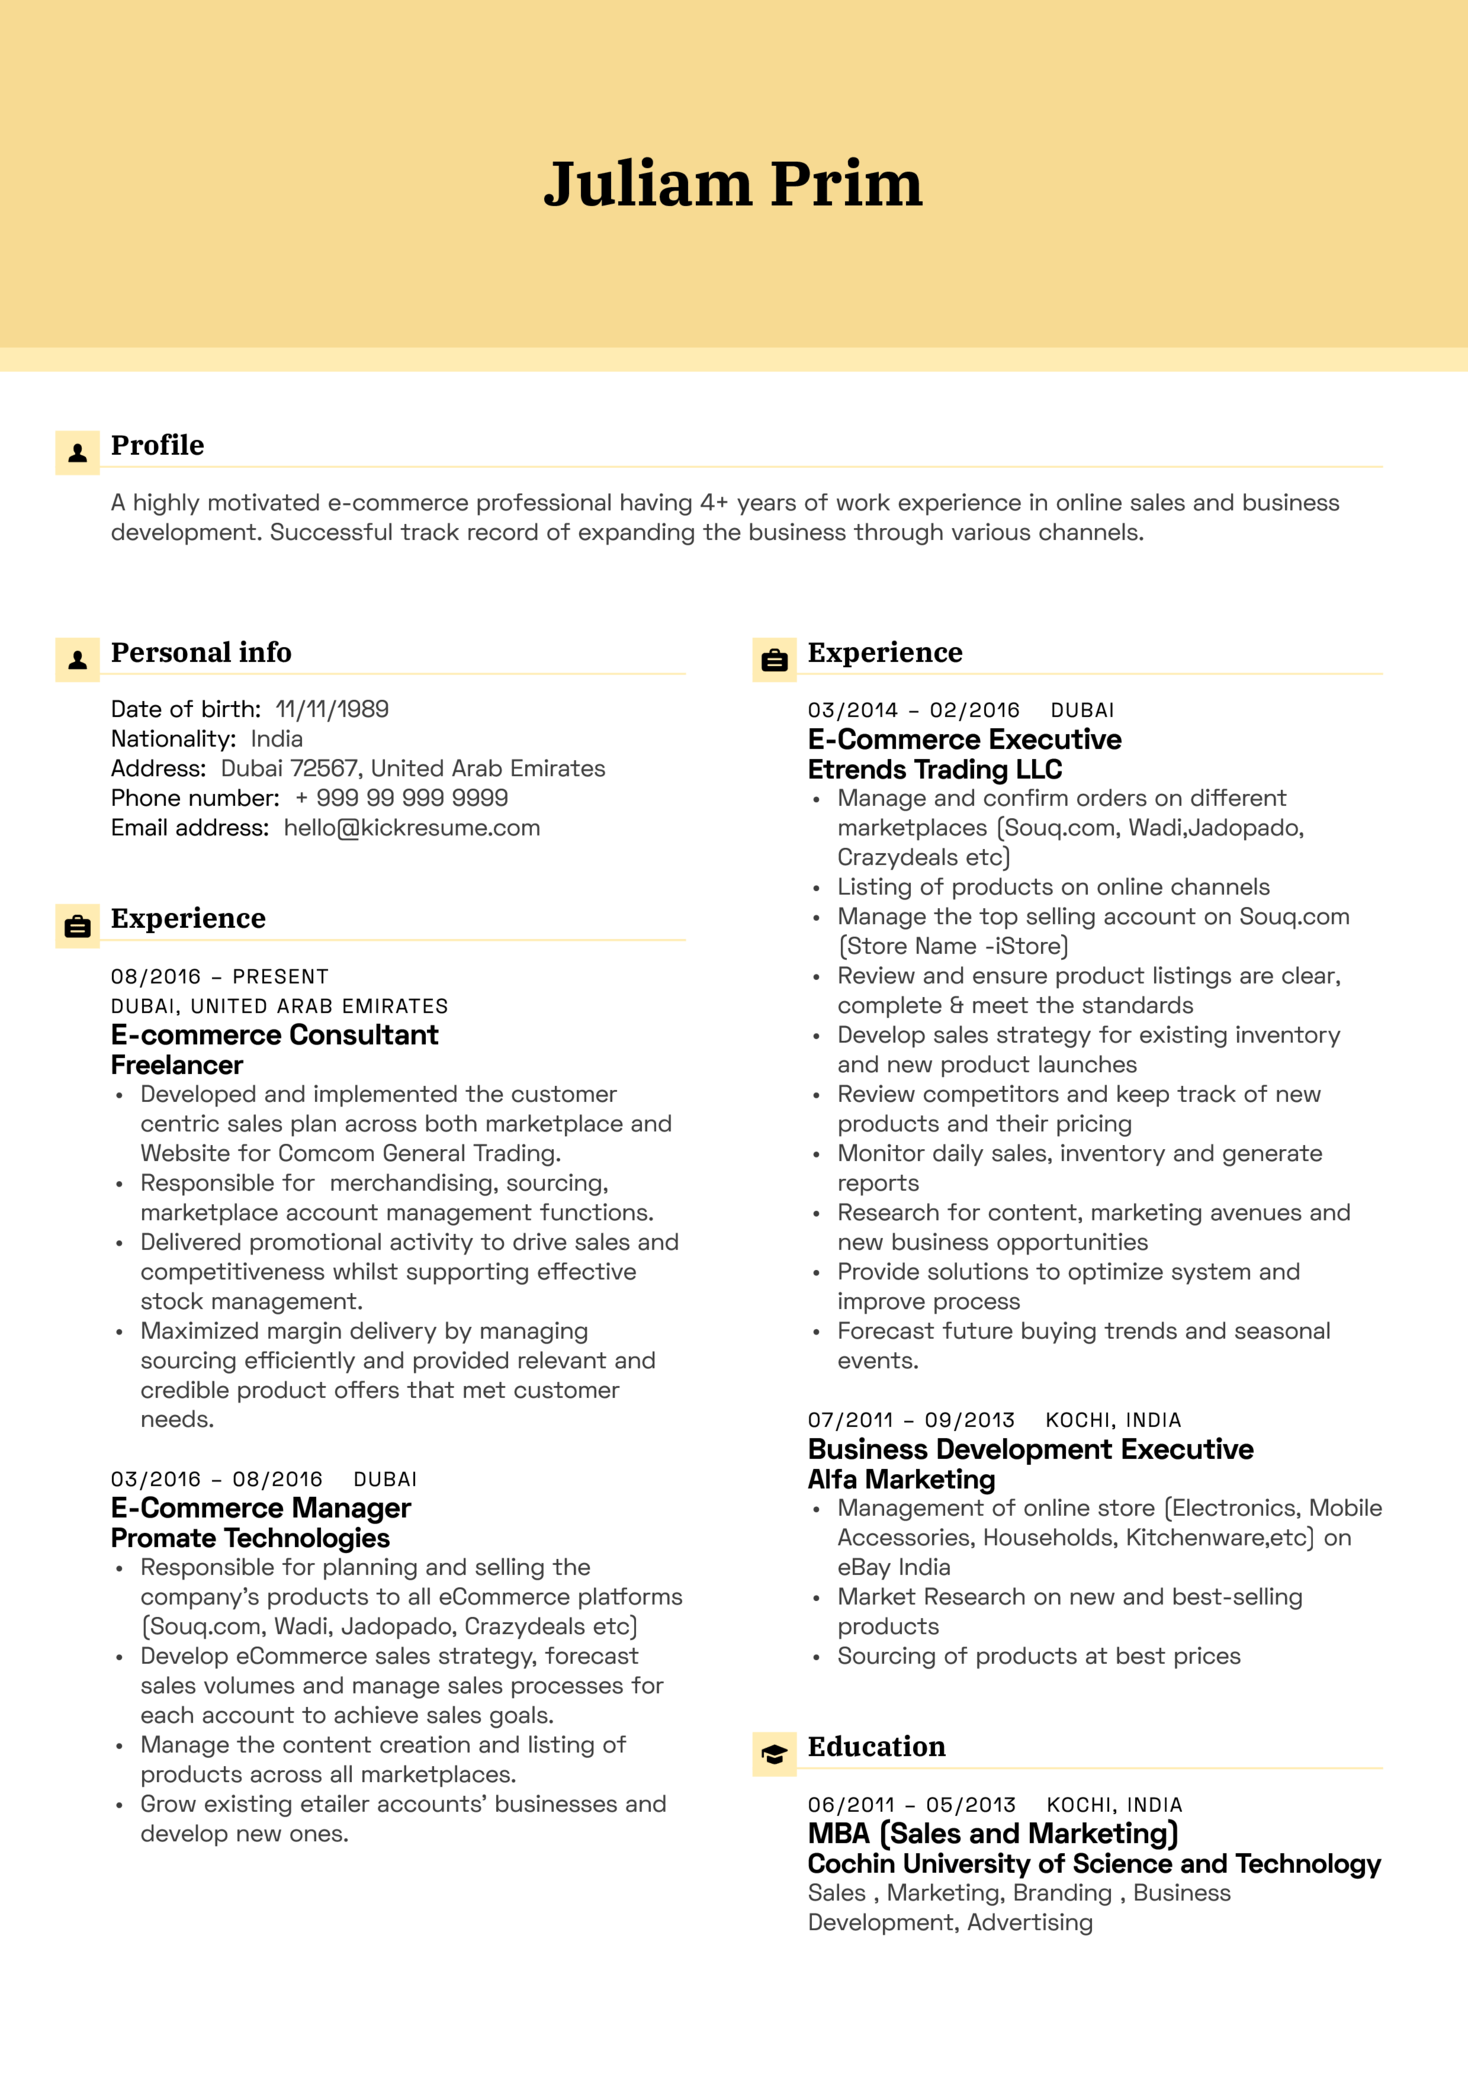 Resume Examples by Real People: Yamaha e-Commerce executive resume ...